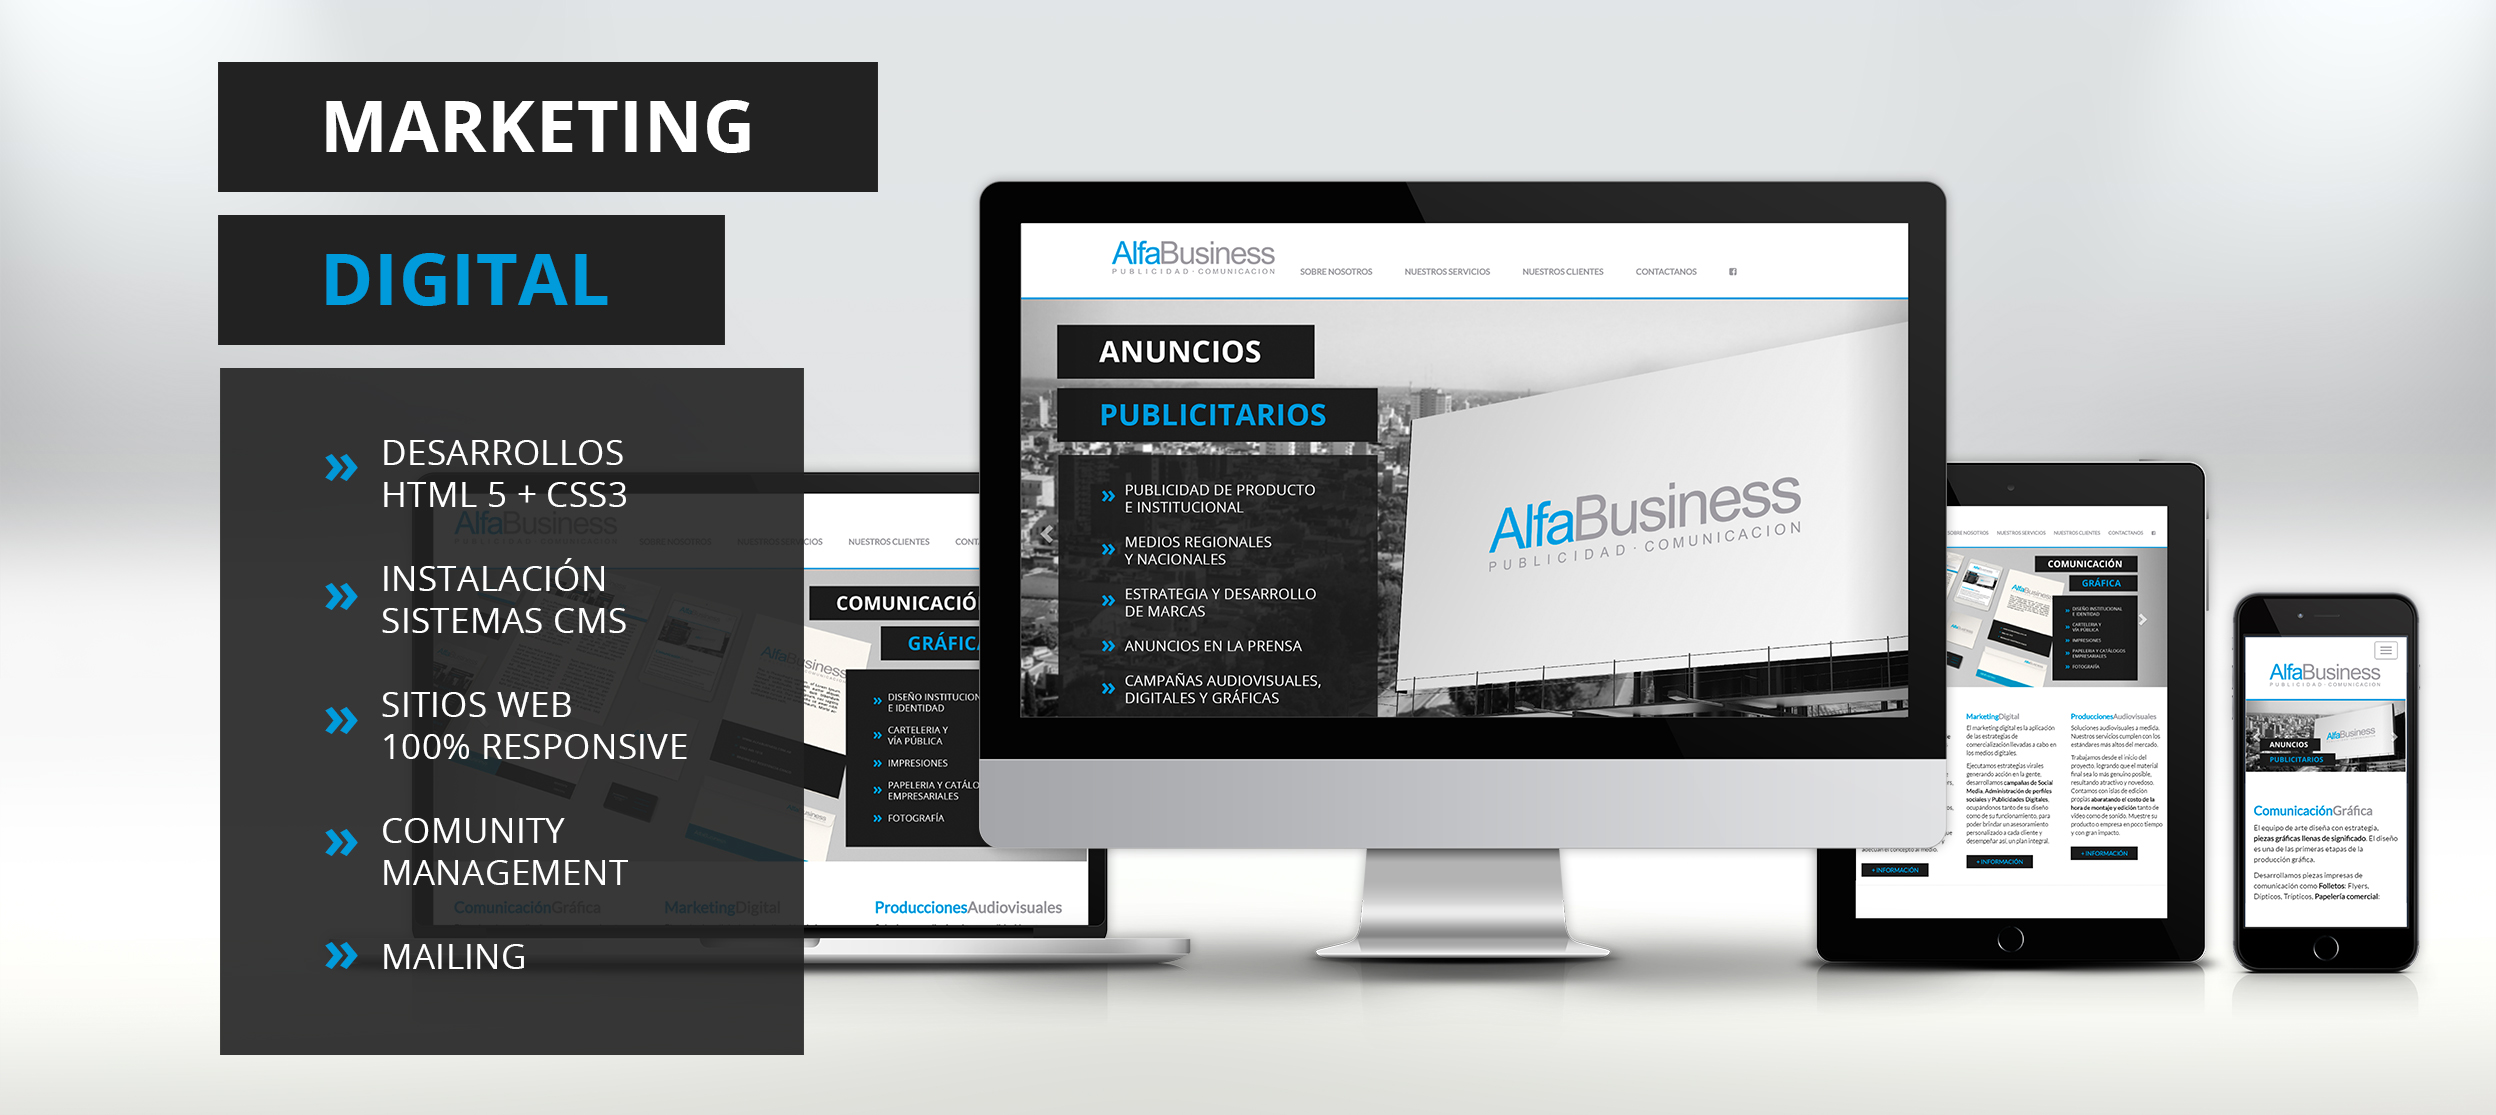 Alfa Business marketing digital